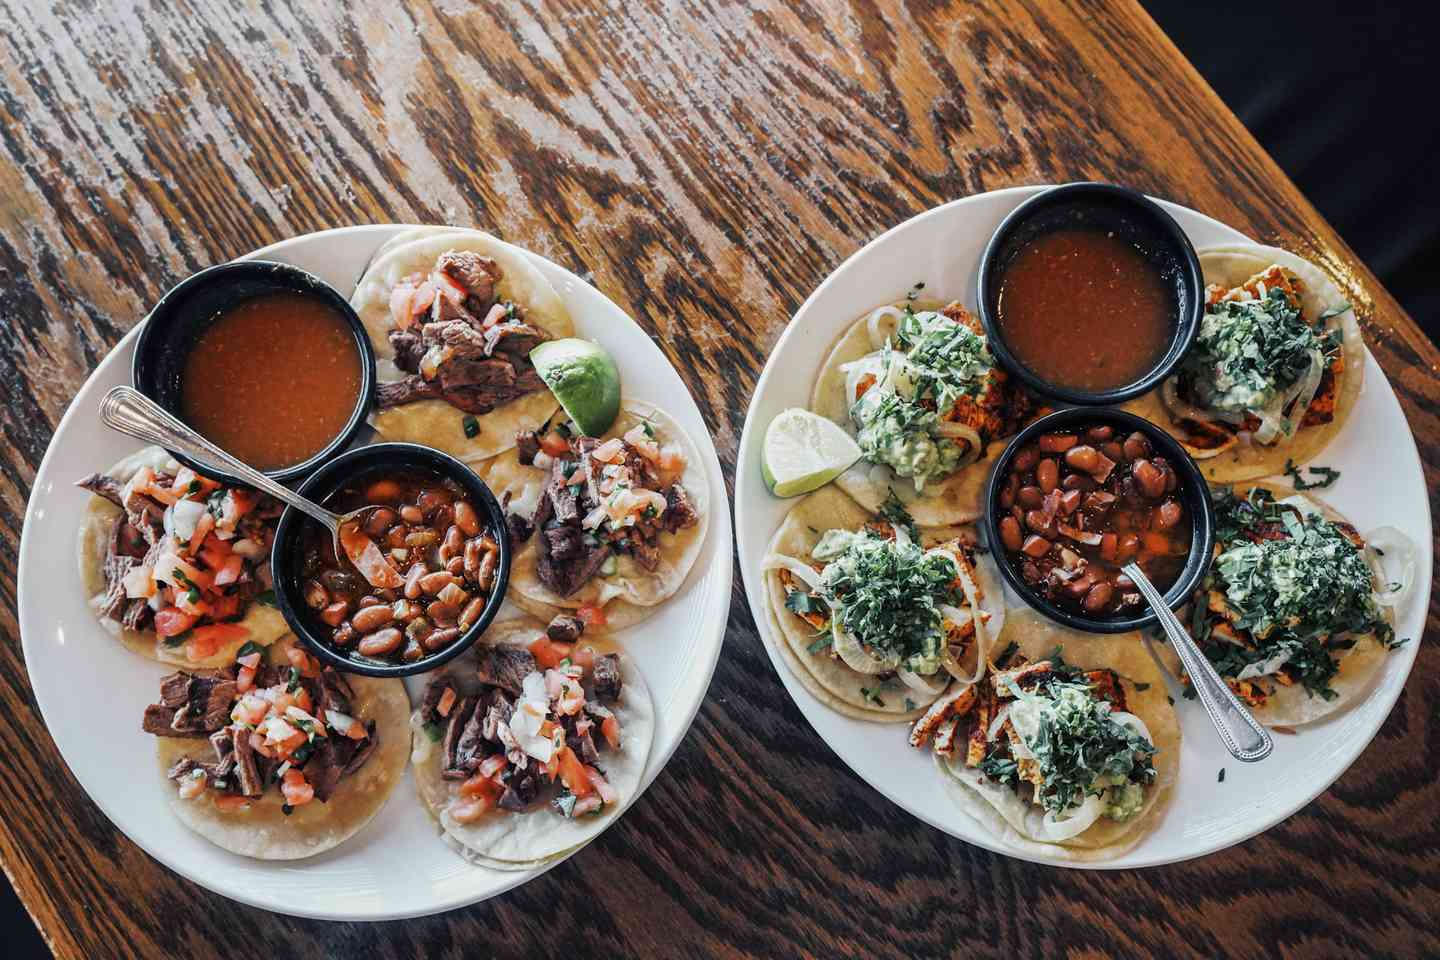 two plates of tacos